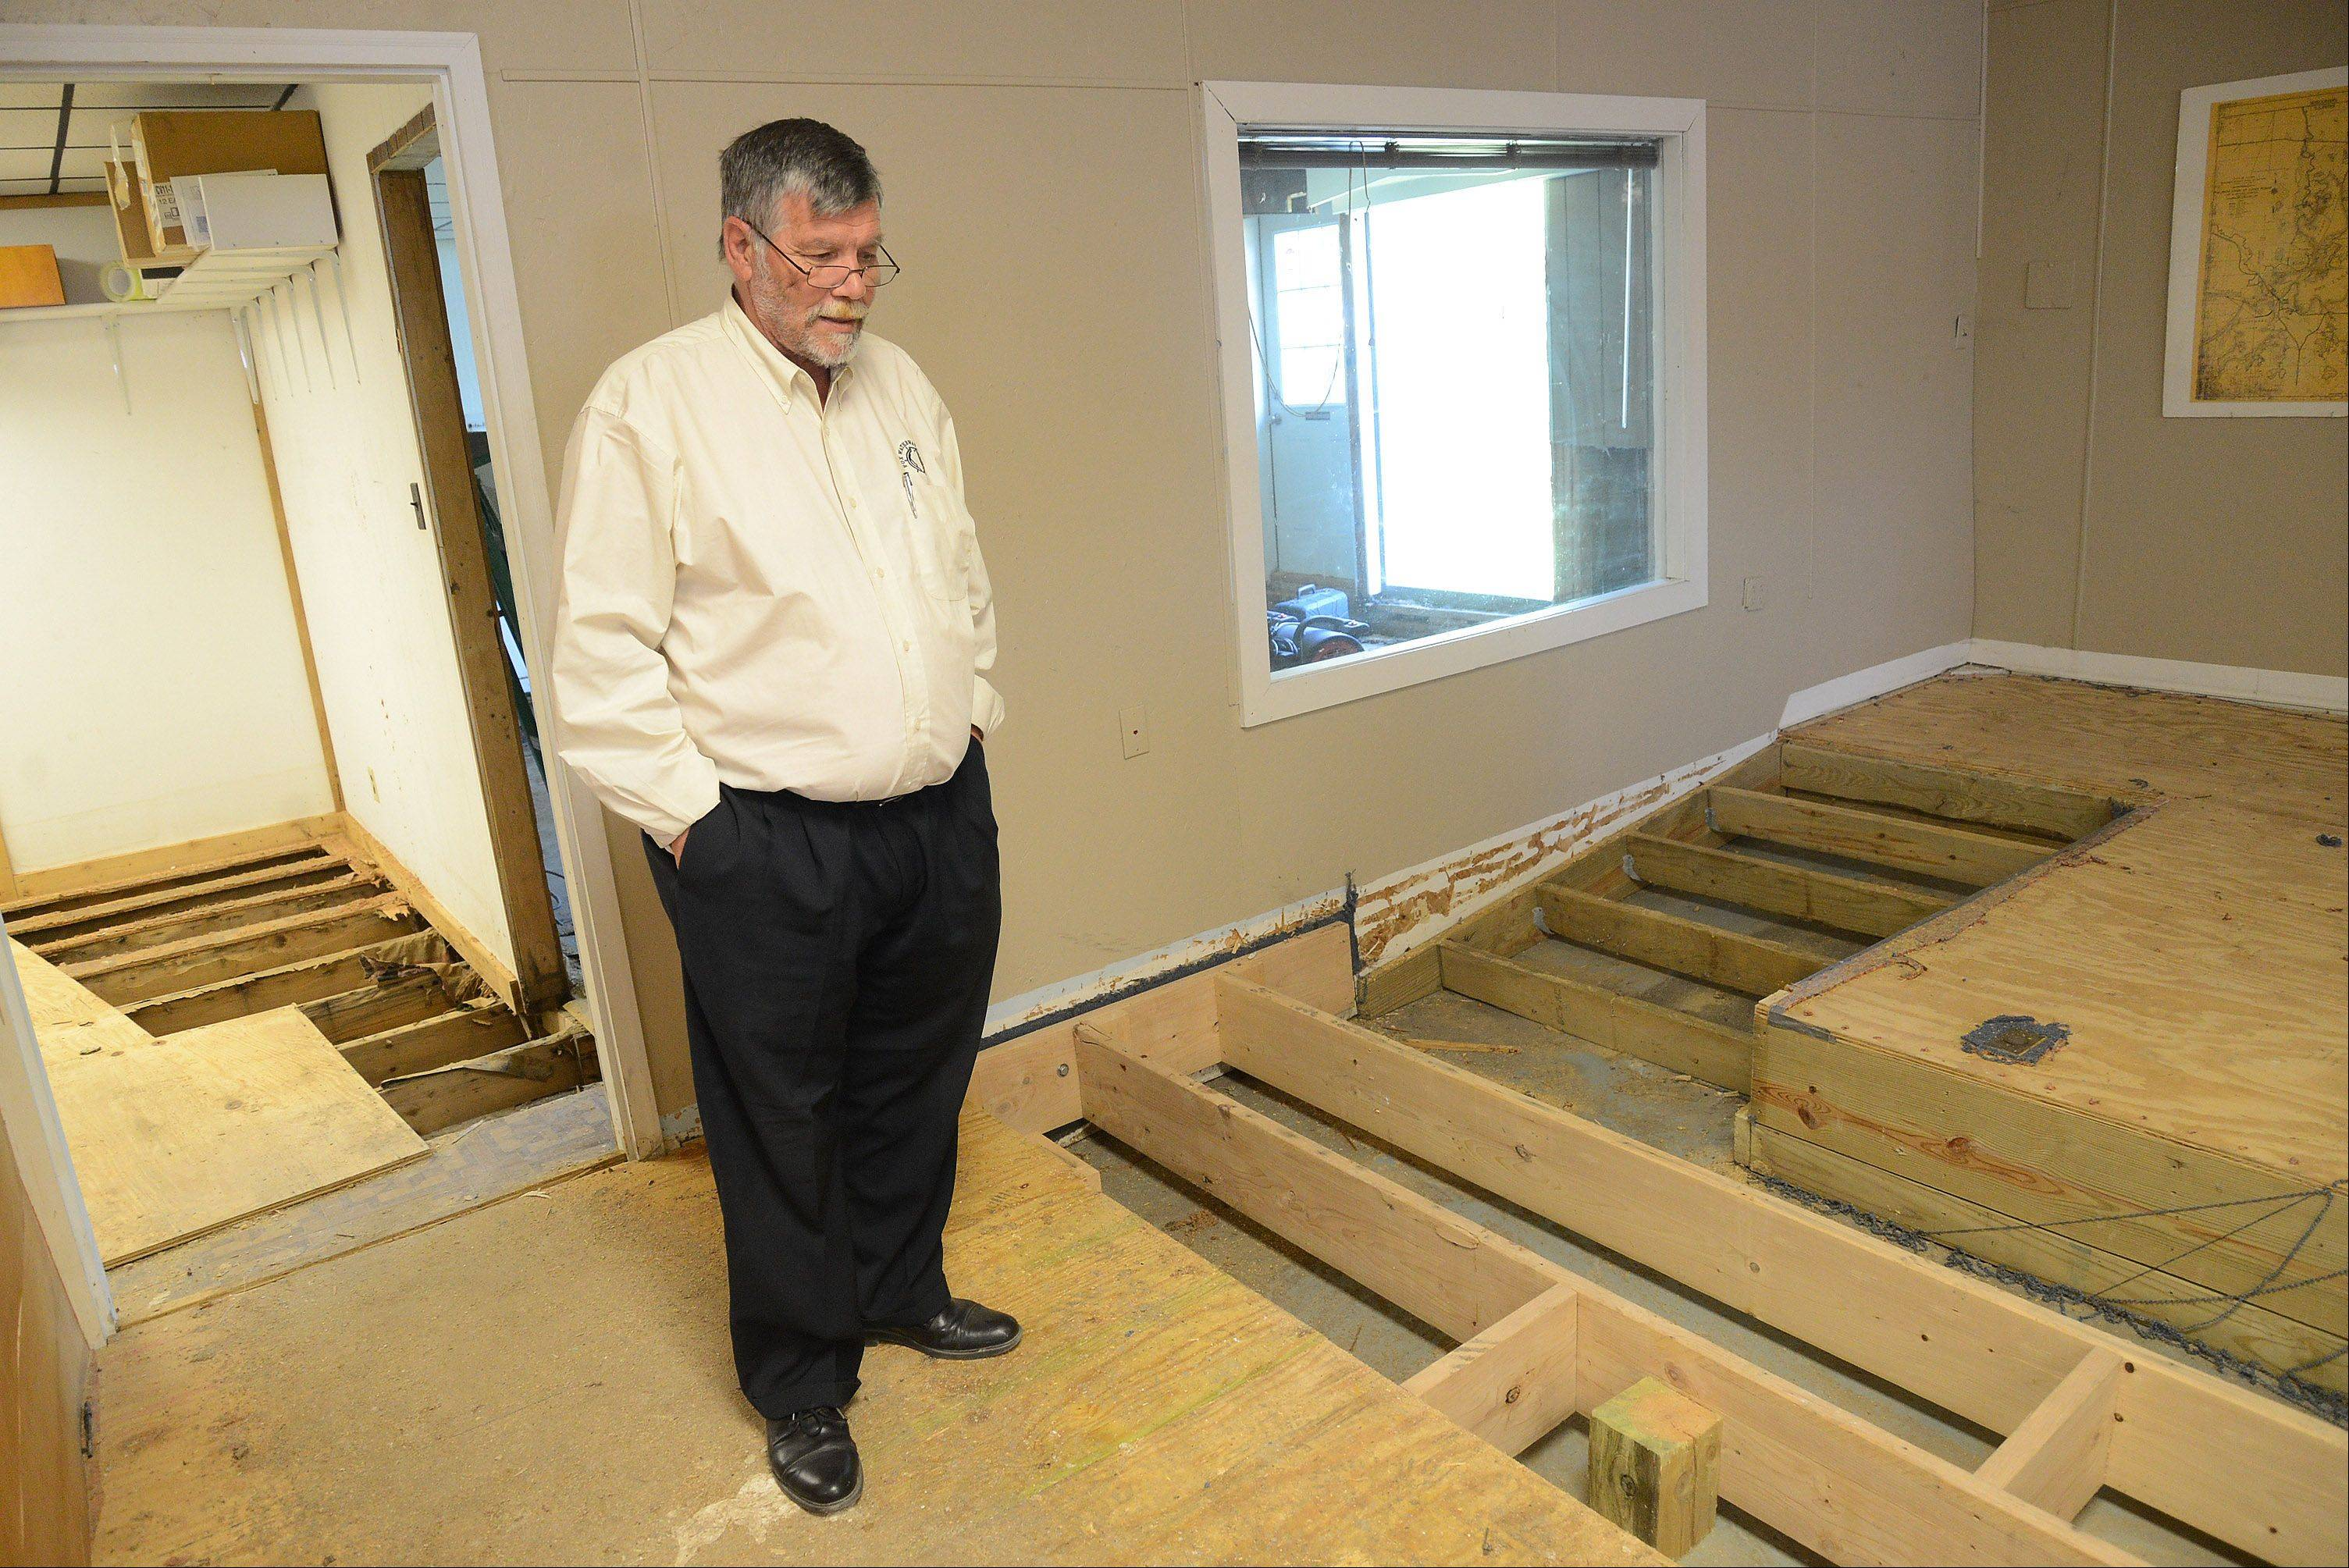 Fox Waterway Agency Executive Director Ron Barker looks over the agency's temporary office space in a trailer. April's floods severely damaged the agency's headquarters in Fox Lake.